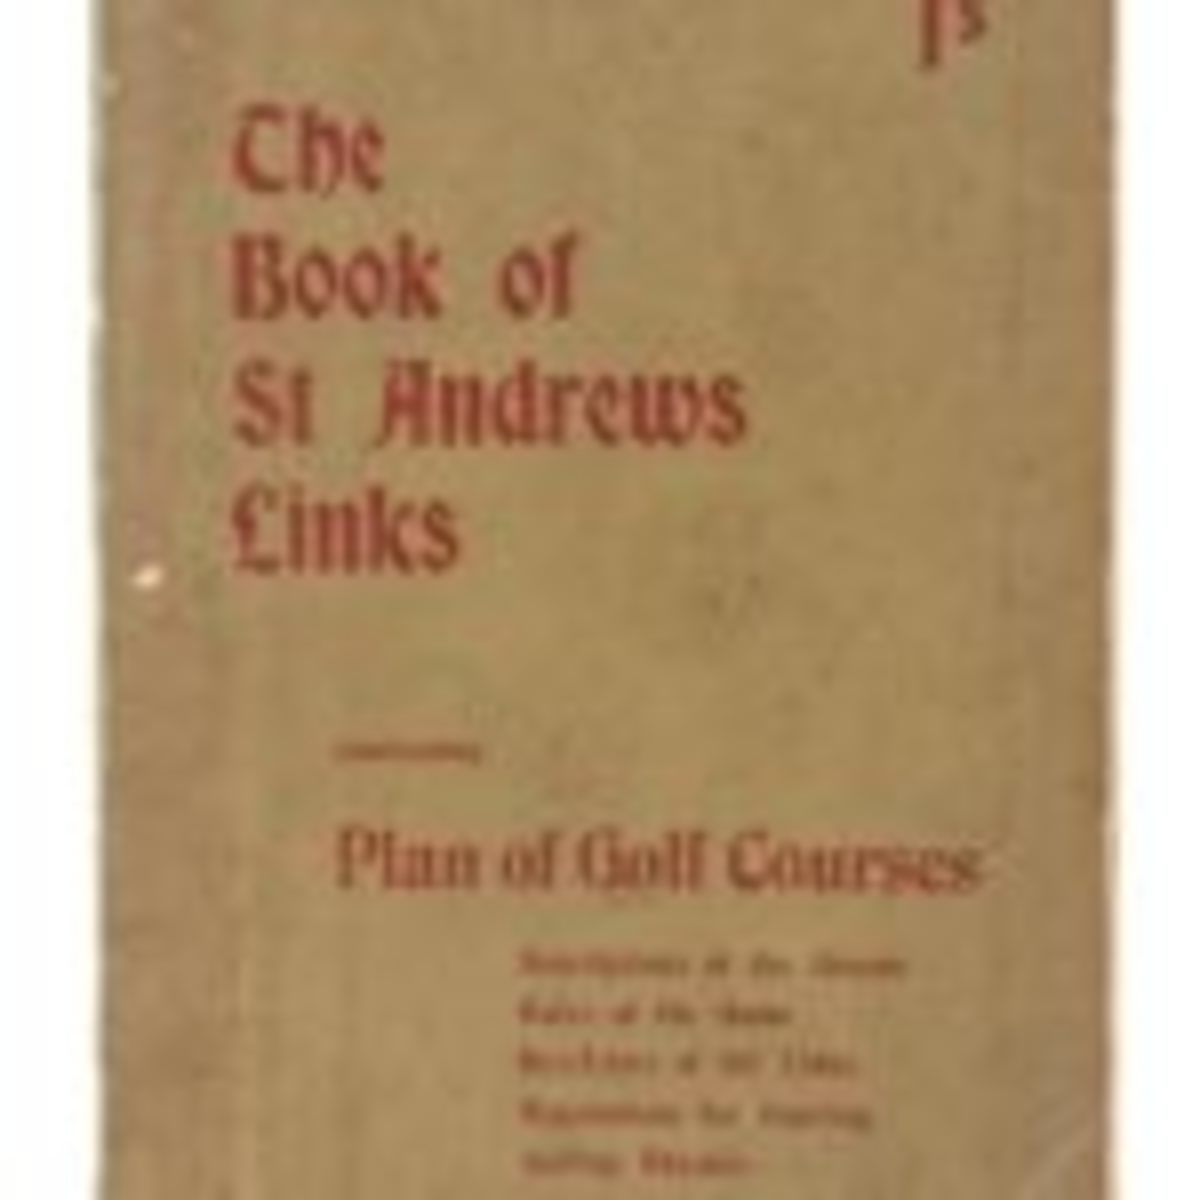 The Book of St Andrews Links